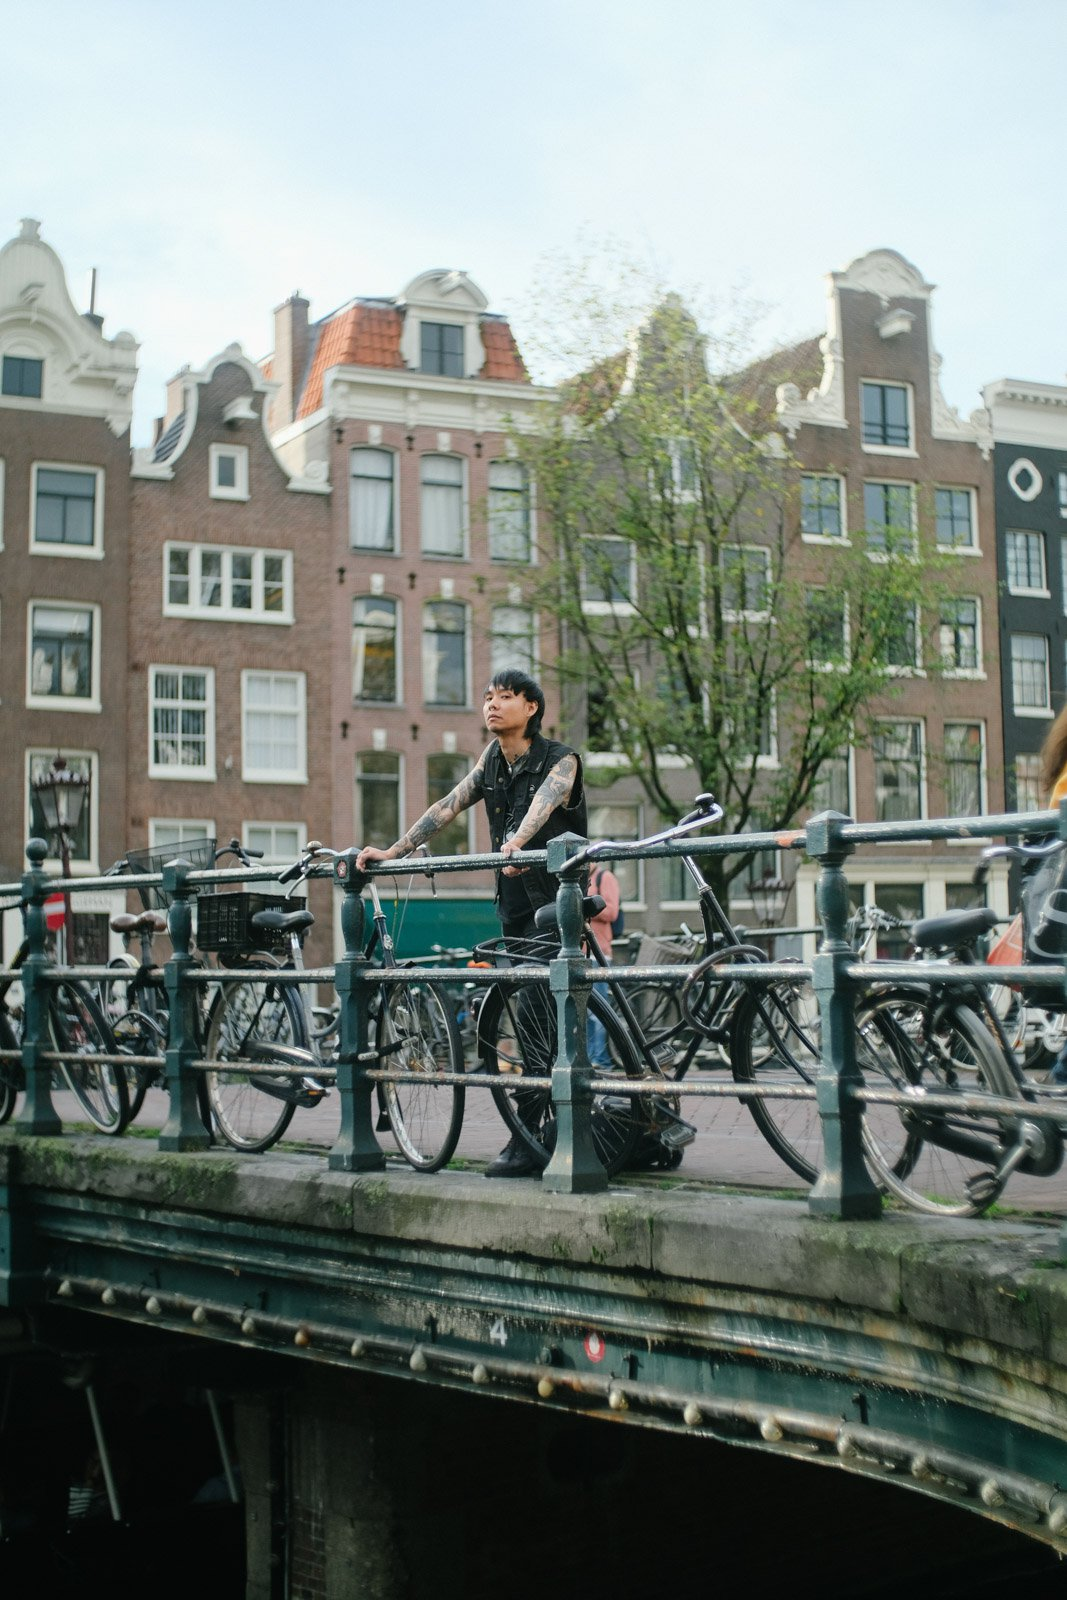 amsterdam man's photo sessions